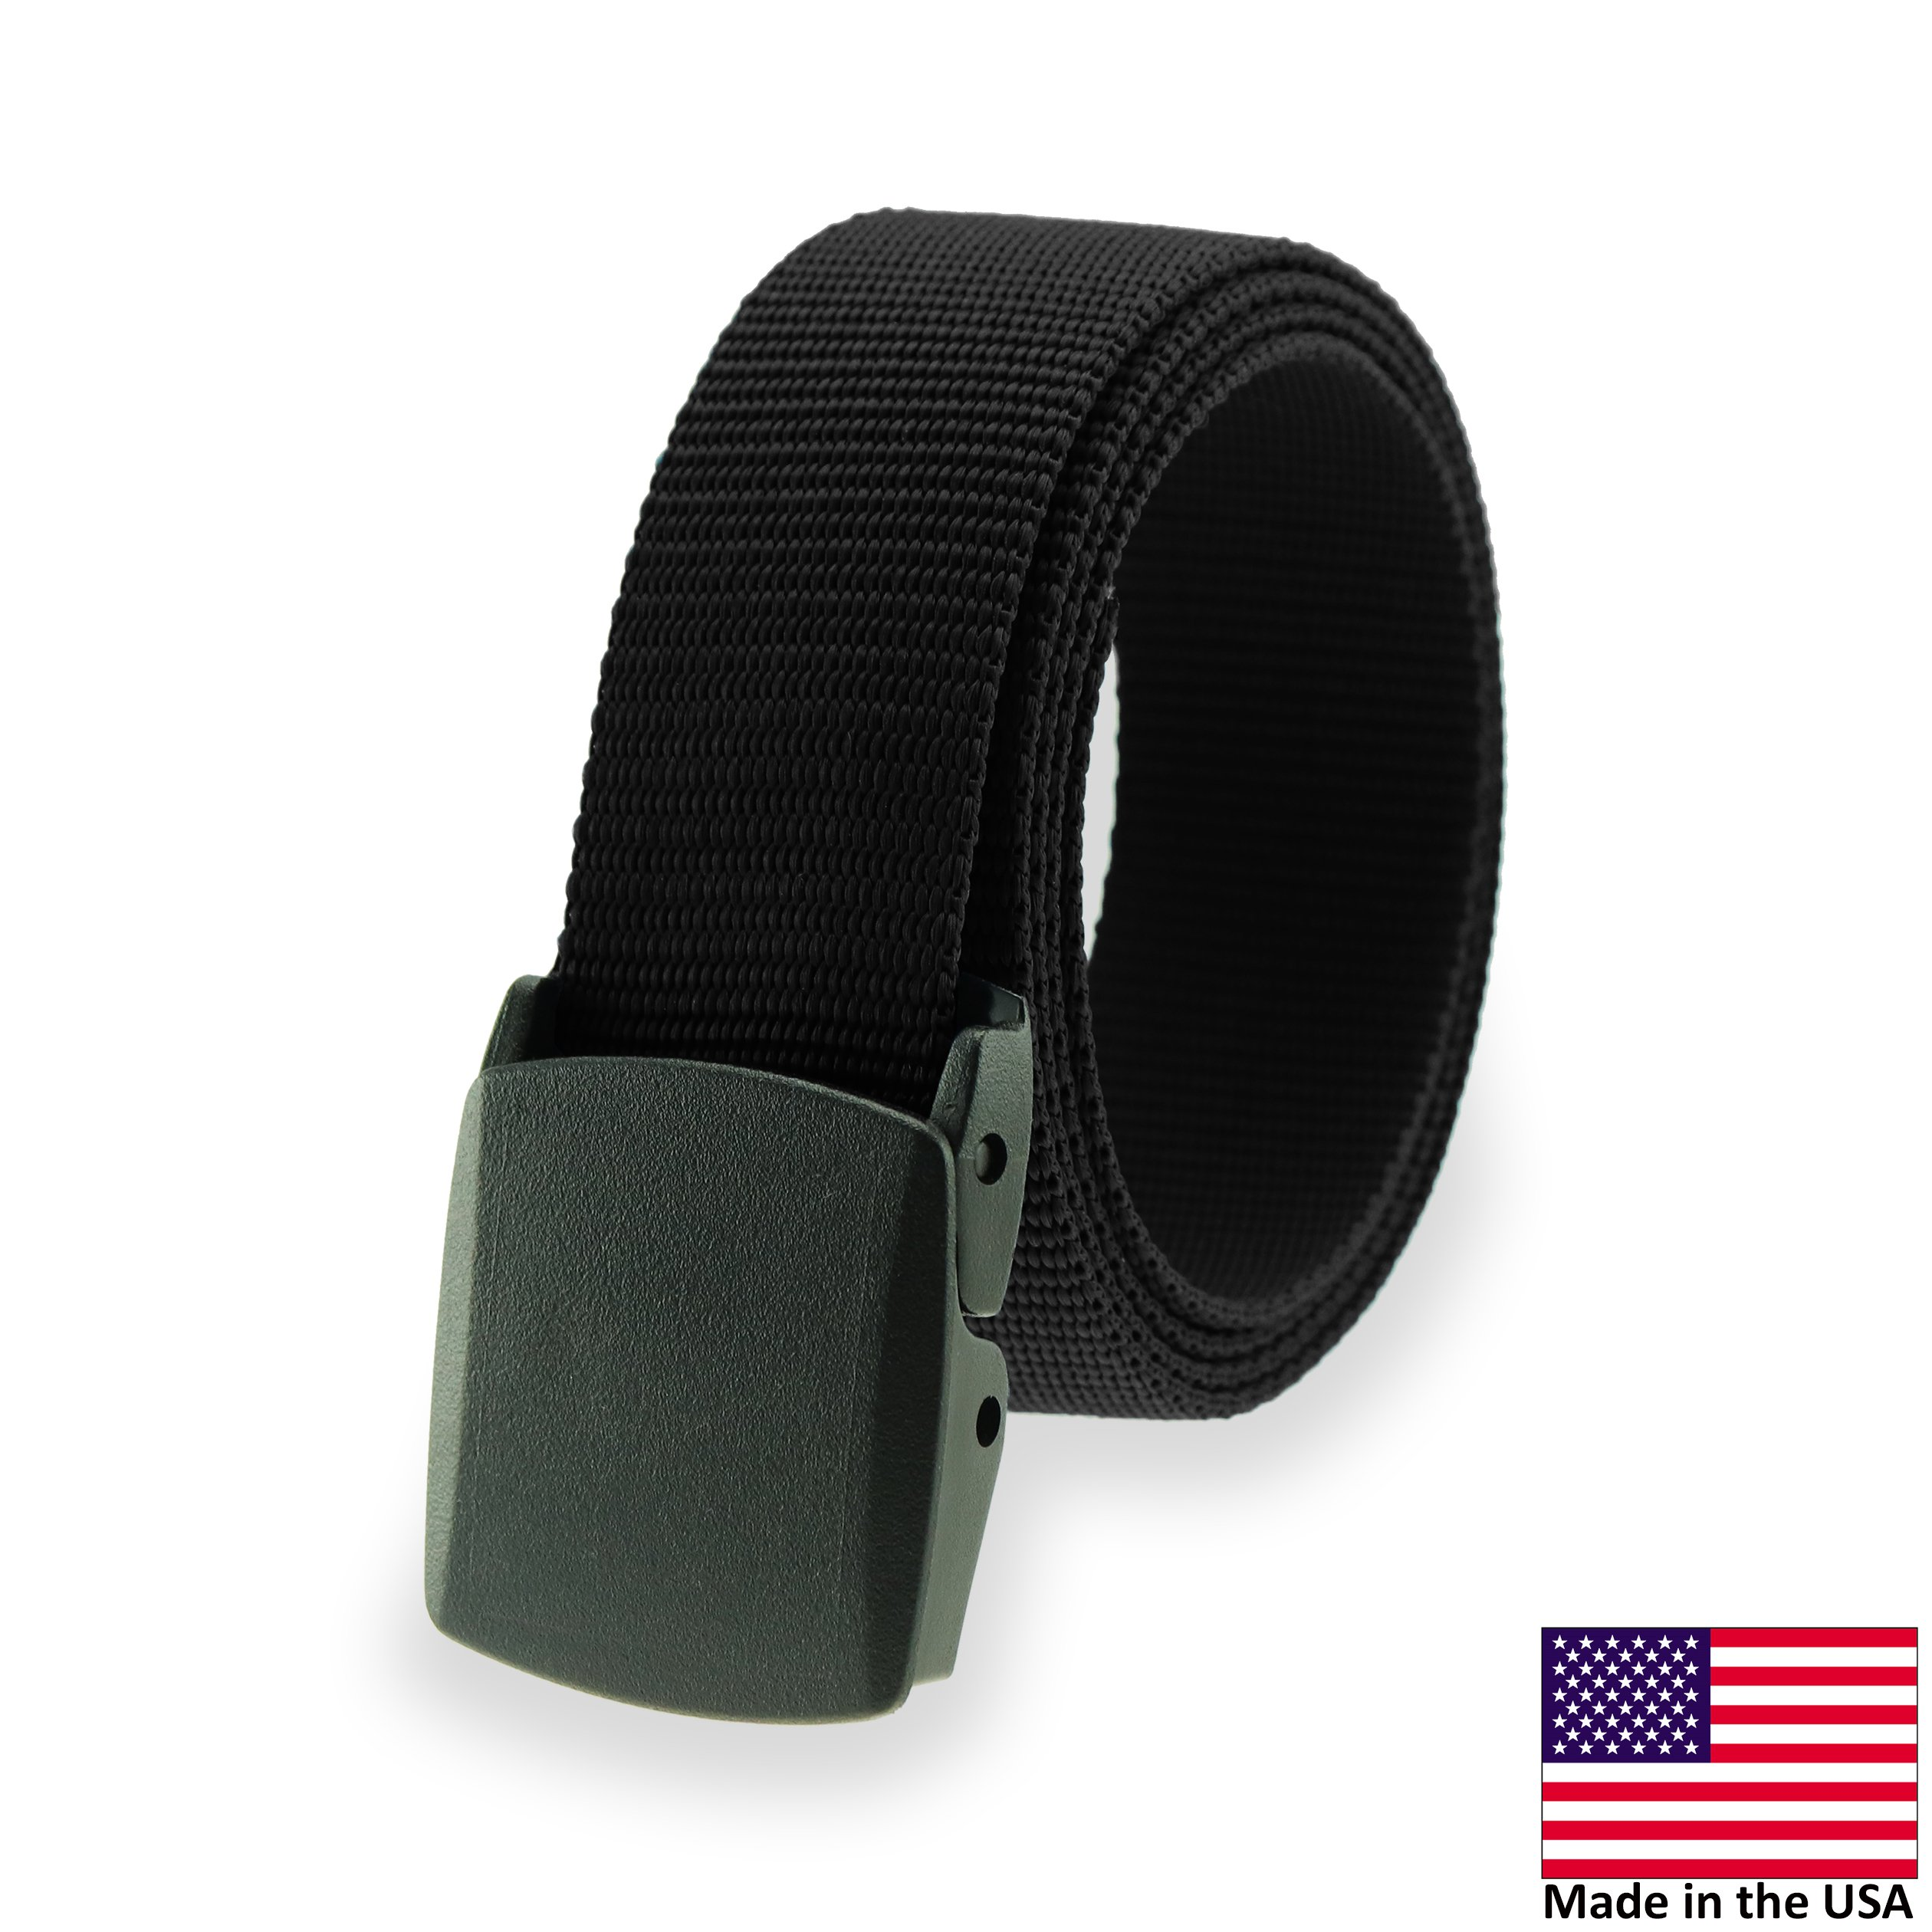 Military Style Tactical Belt - Made in USA by Thomas Bates (Black)